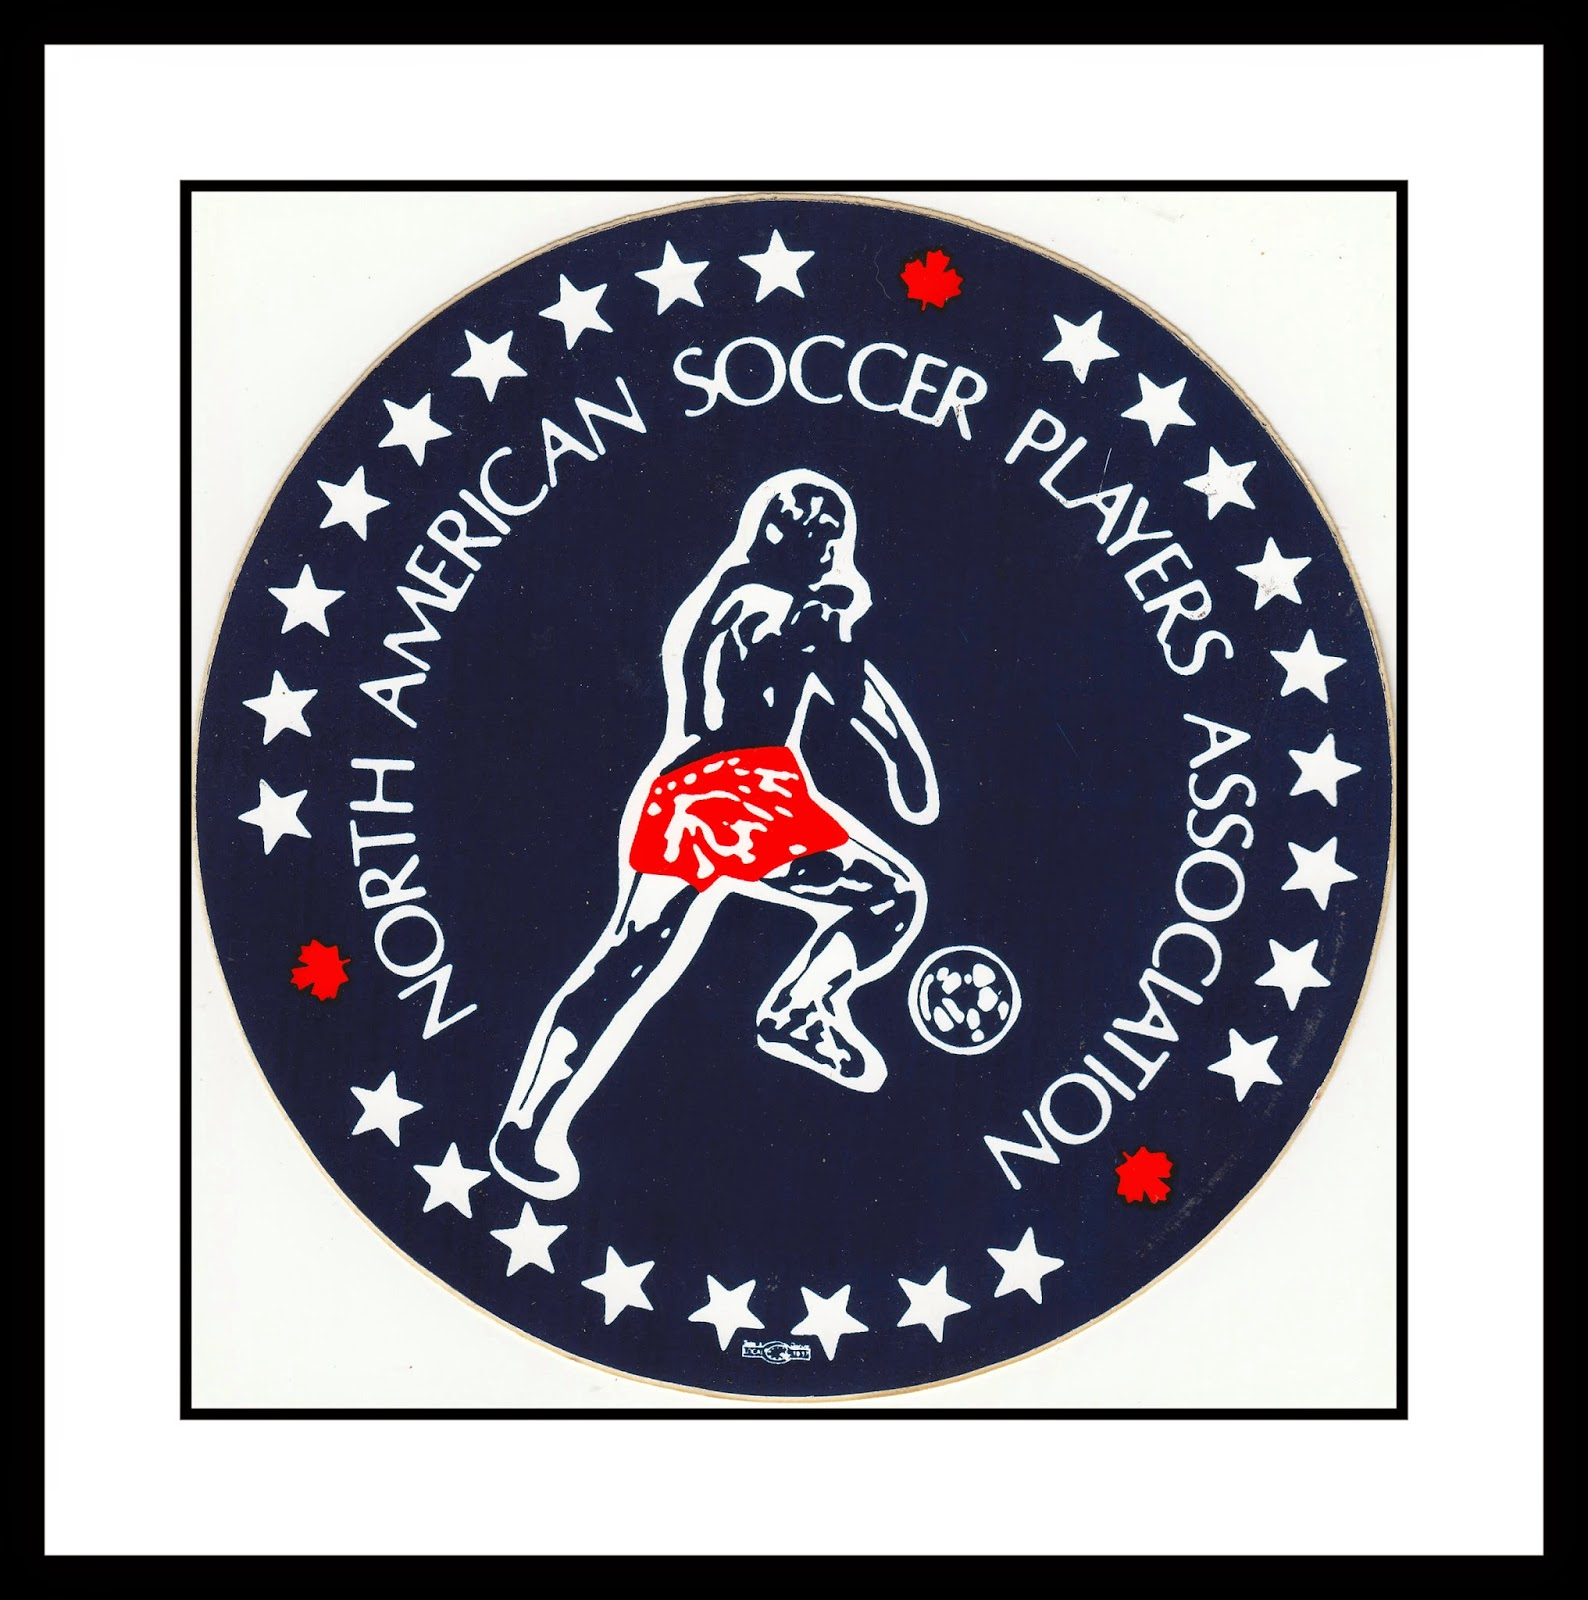 316e3165317 These decals are from the late 1970 s to early 1980 s. The player s union  held a strike at the beginning of the 1979 NASL season. It lasted about a  week and ...